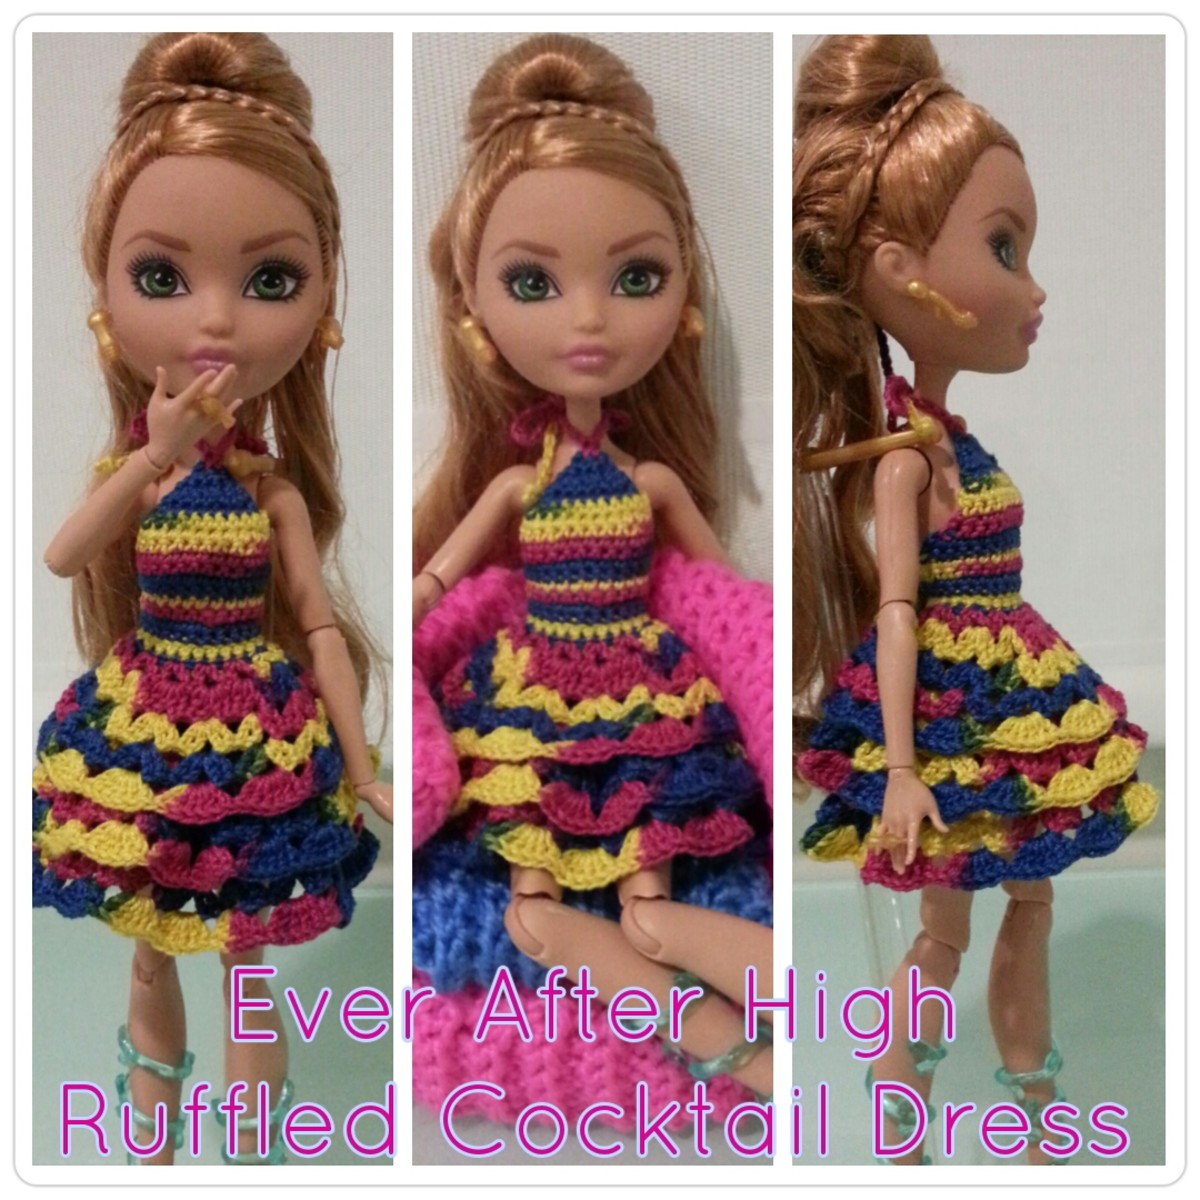 Crochet Ever After : Ever After High Ruffled Cocktail Dress (Free Crochet Pattern)